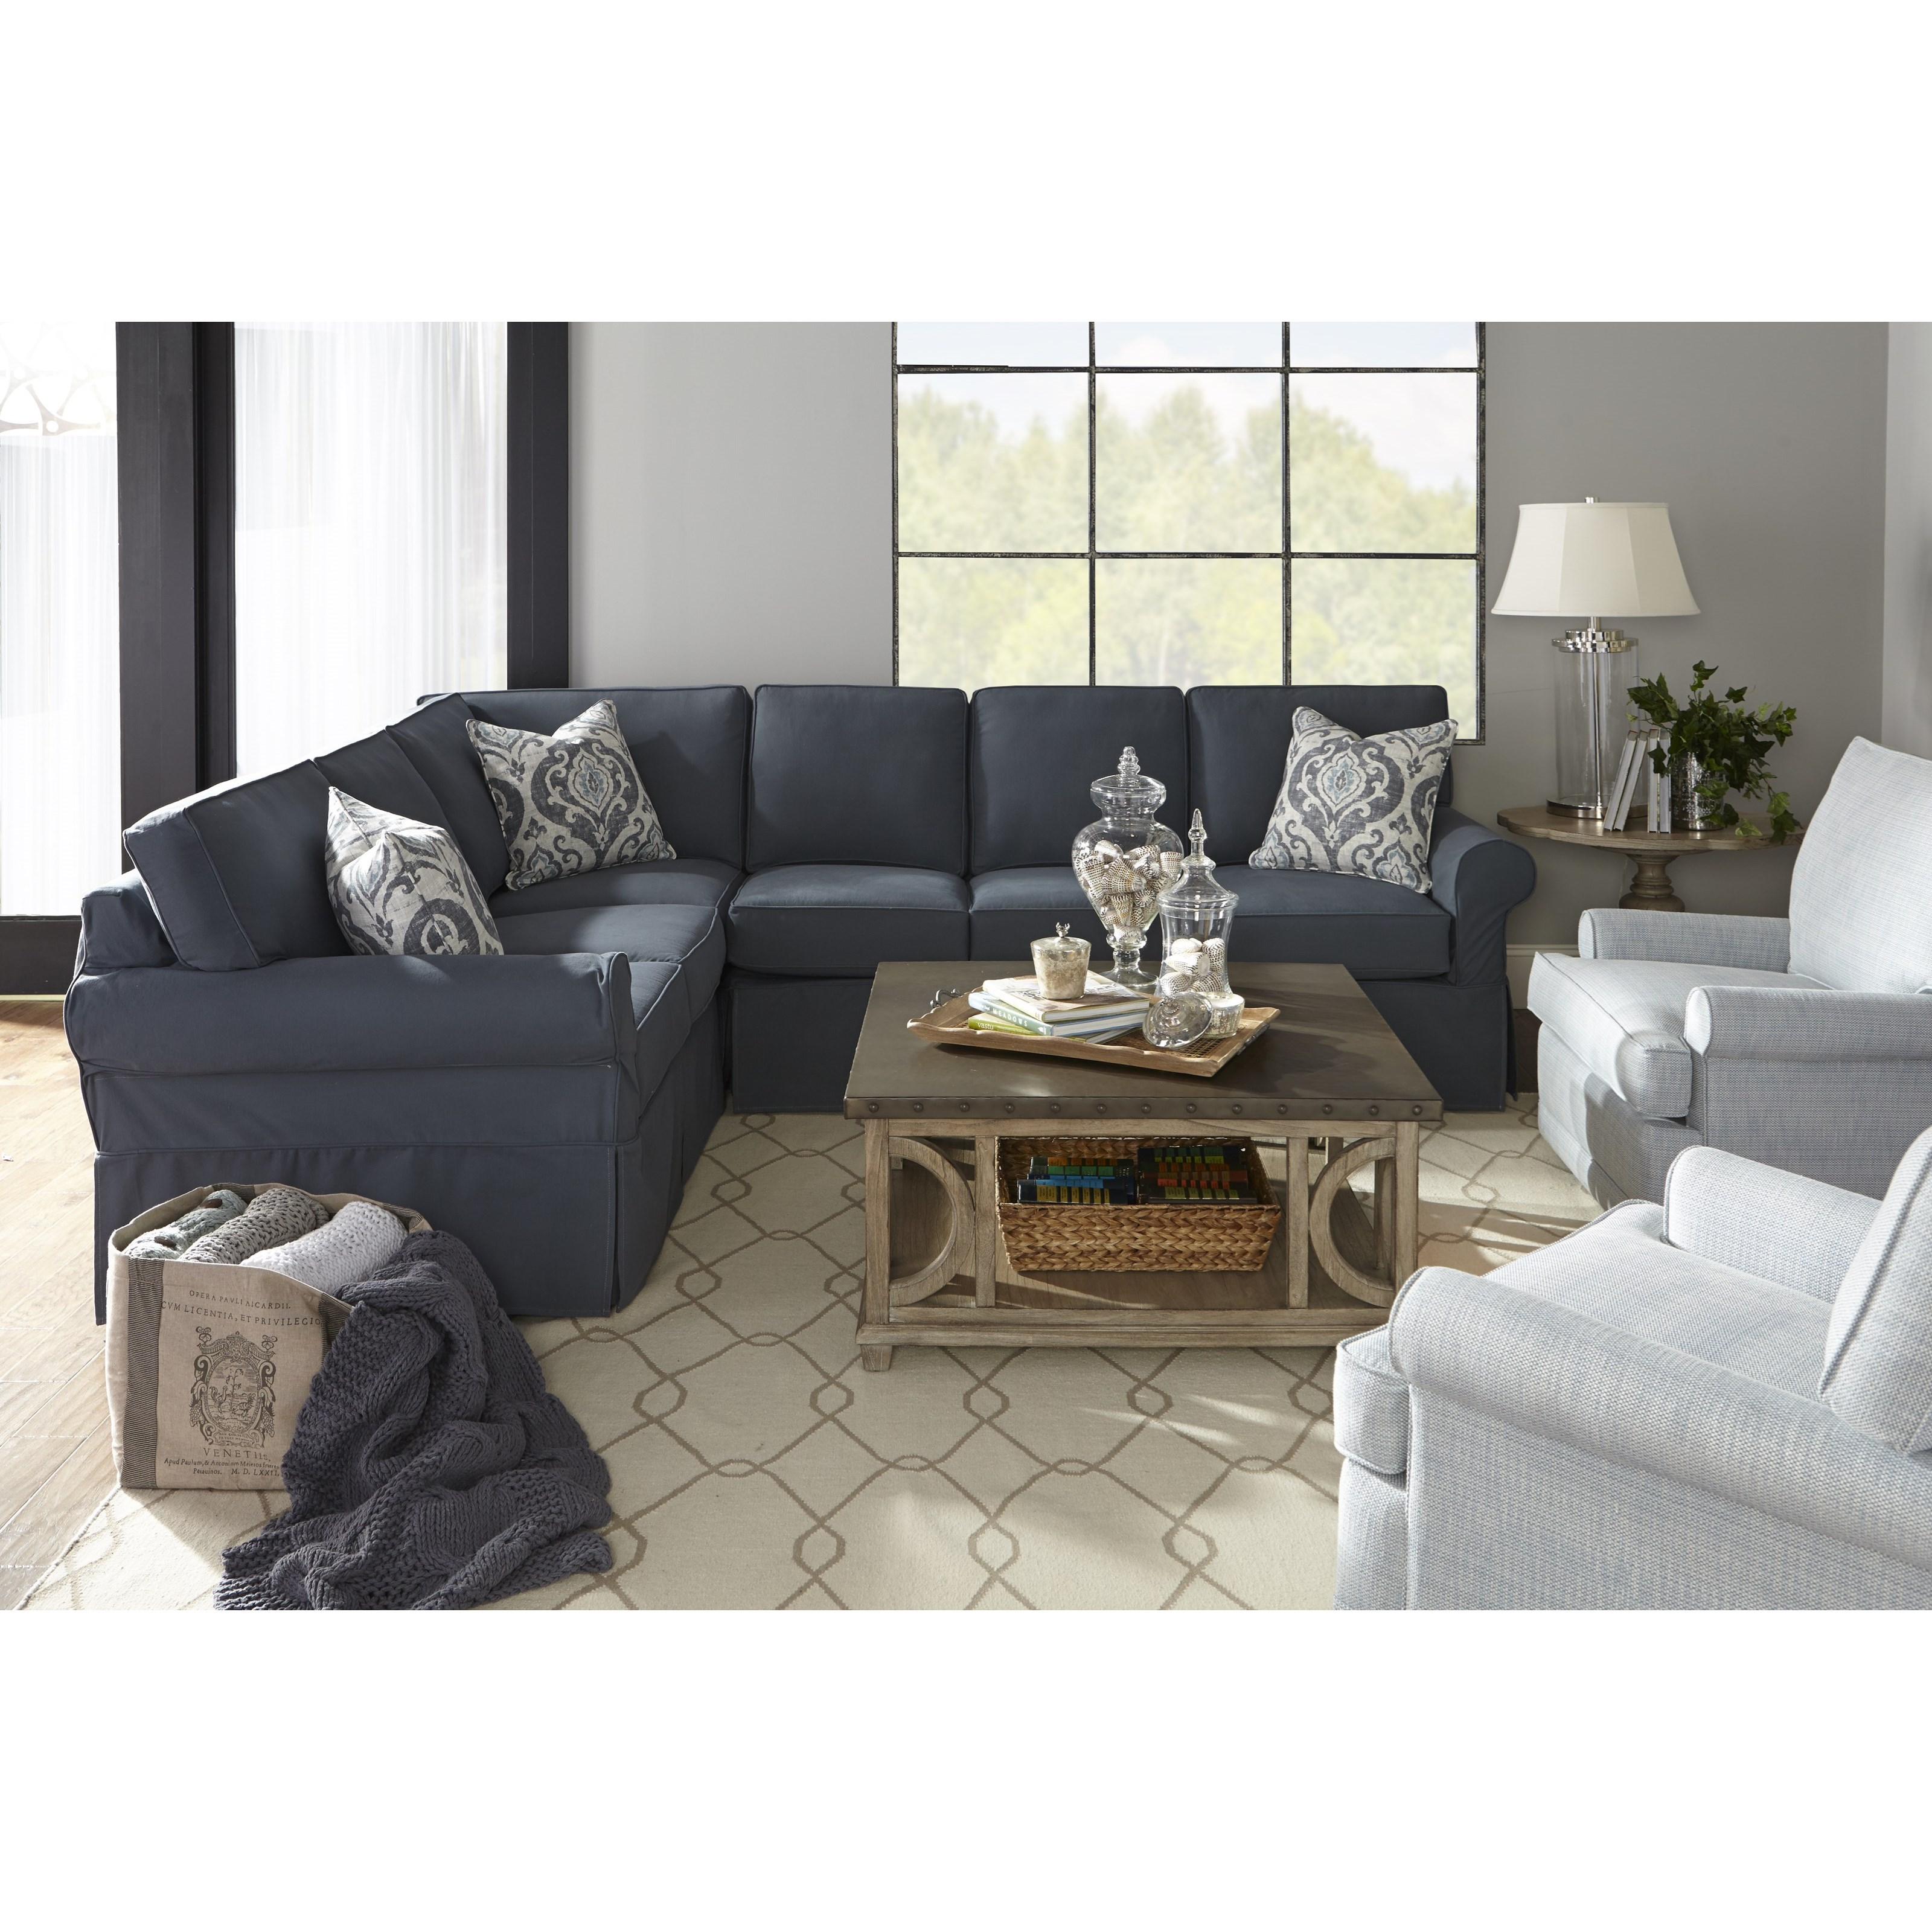 rowe masquerade sectional sofa black and white striped uk casual style ahfa